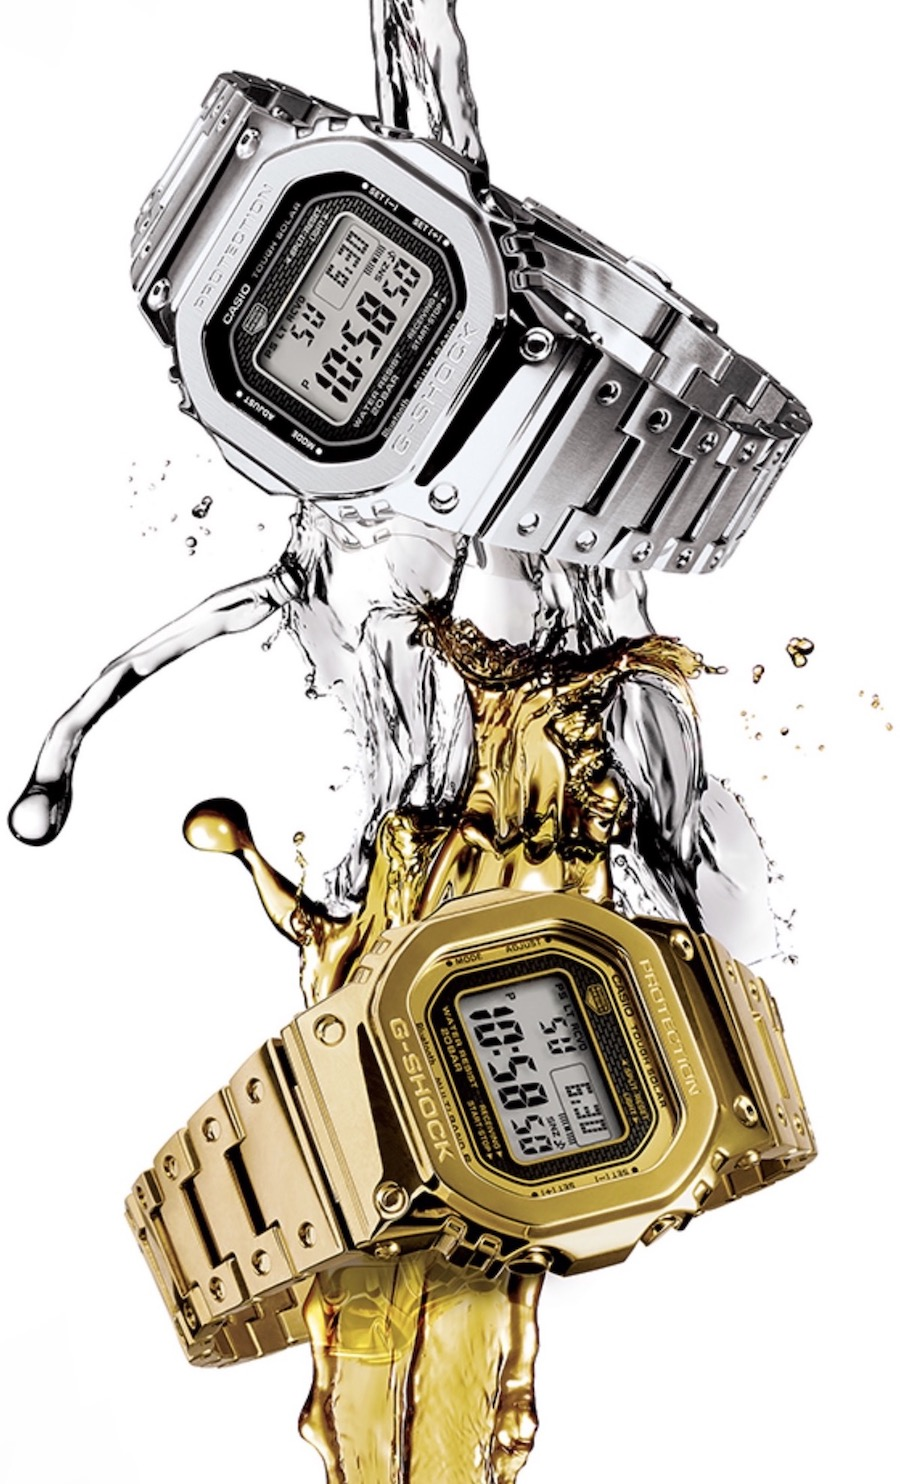 casio-g-shock-5000-series-full-metal-gmw-b5000d-1er-ablogtowatch-20.jpg